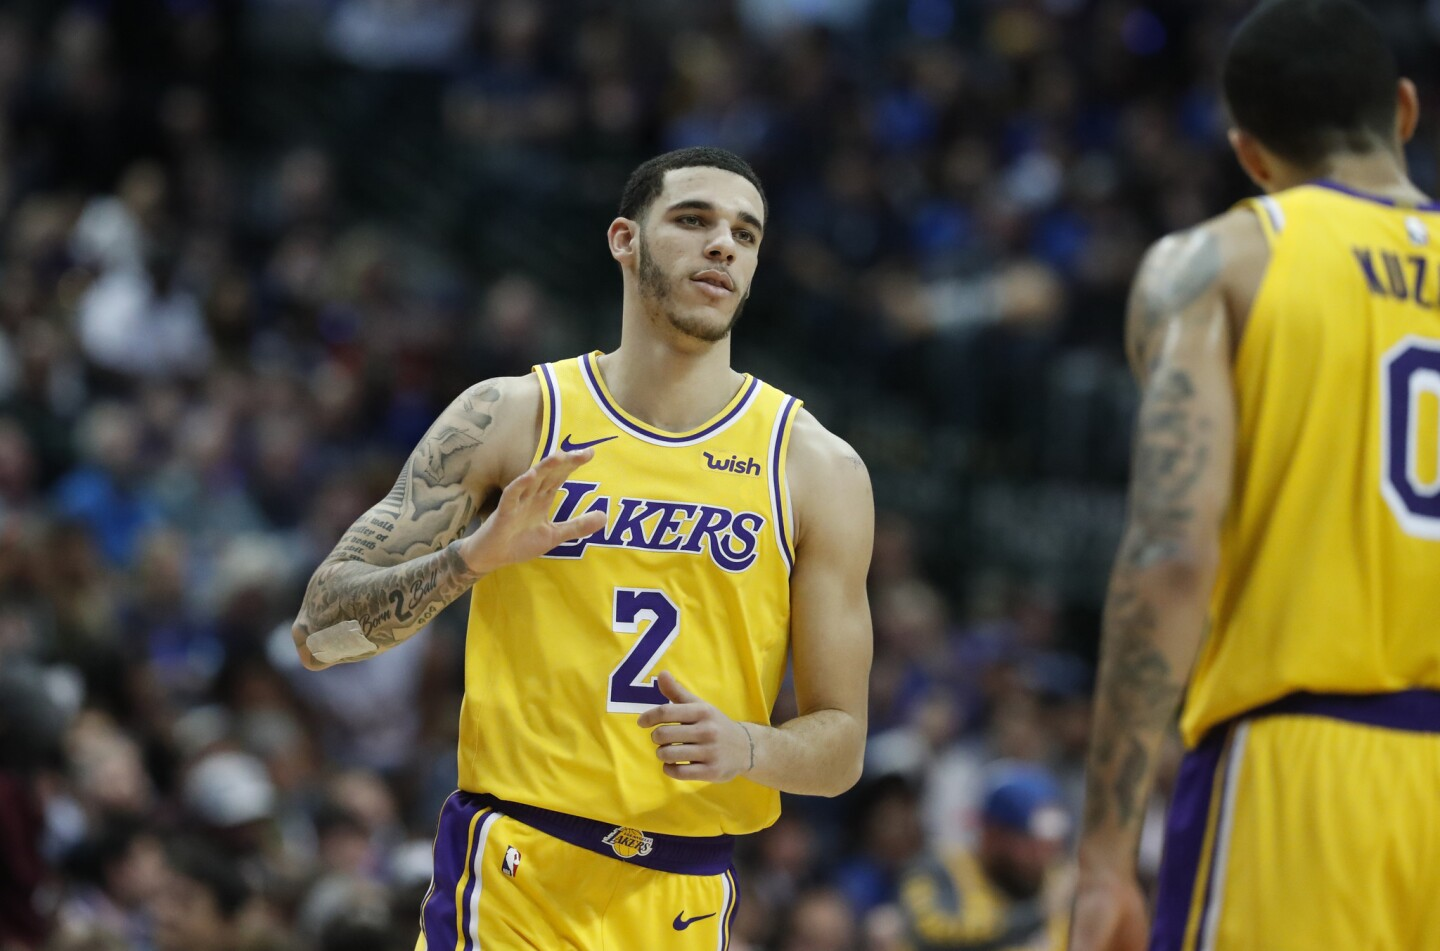 Los Angeles Lakers guard Lonzo Ball (2) and forward Kyle Kuzma (0) during the second half of an NBA basketball game against the Dallas Mavericks in Dallas, Monday, Jan. 7, 2019. (AP Photo/LM Otero)